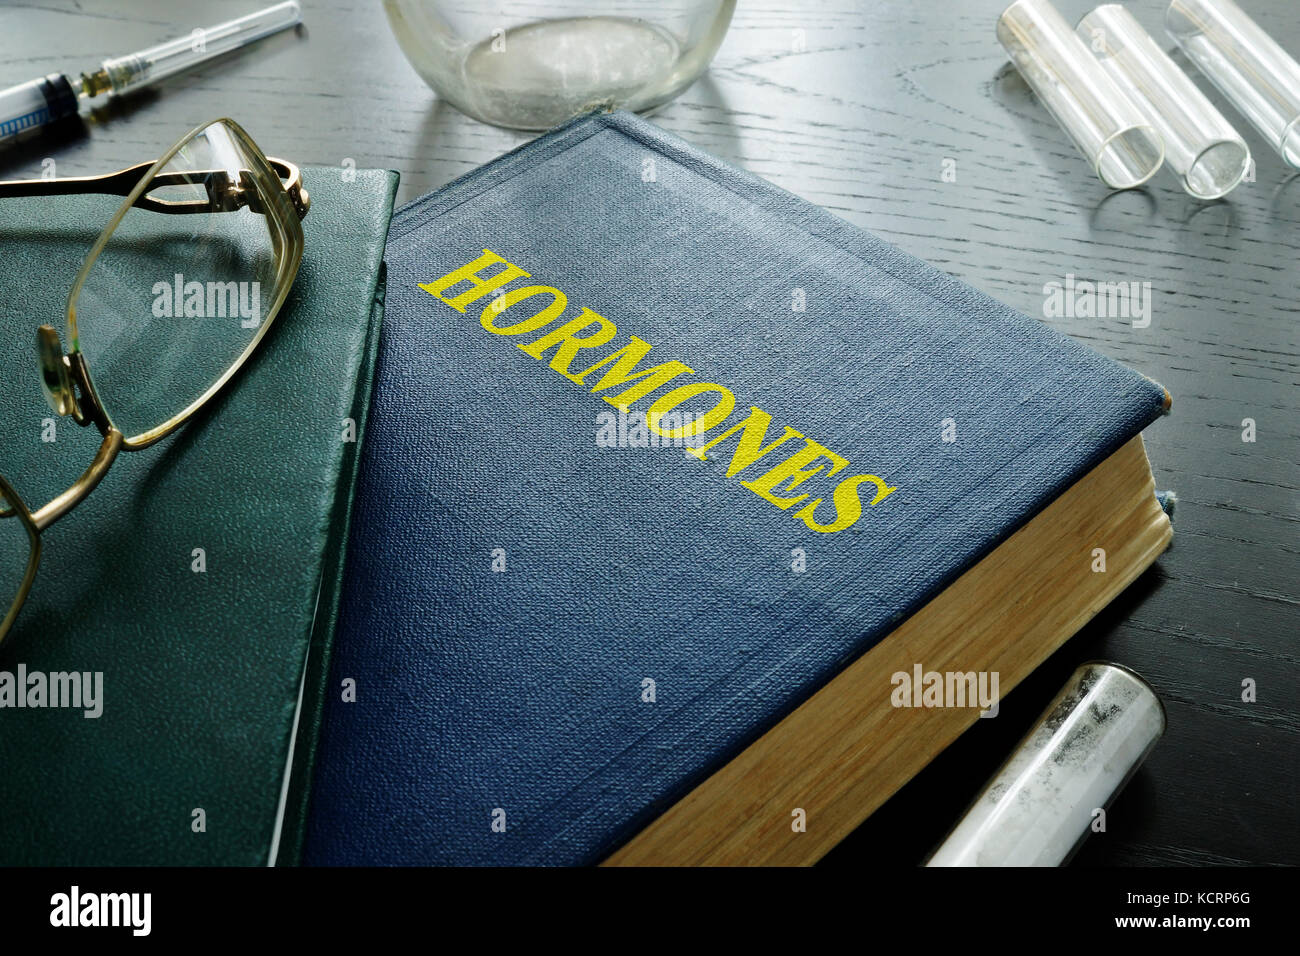 Book with title hormones on a desk. - Stock Image